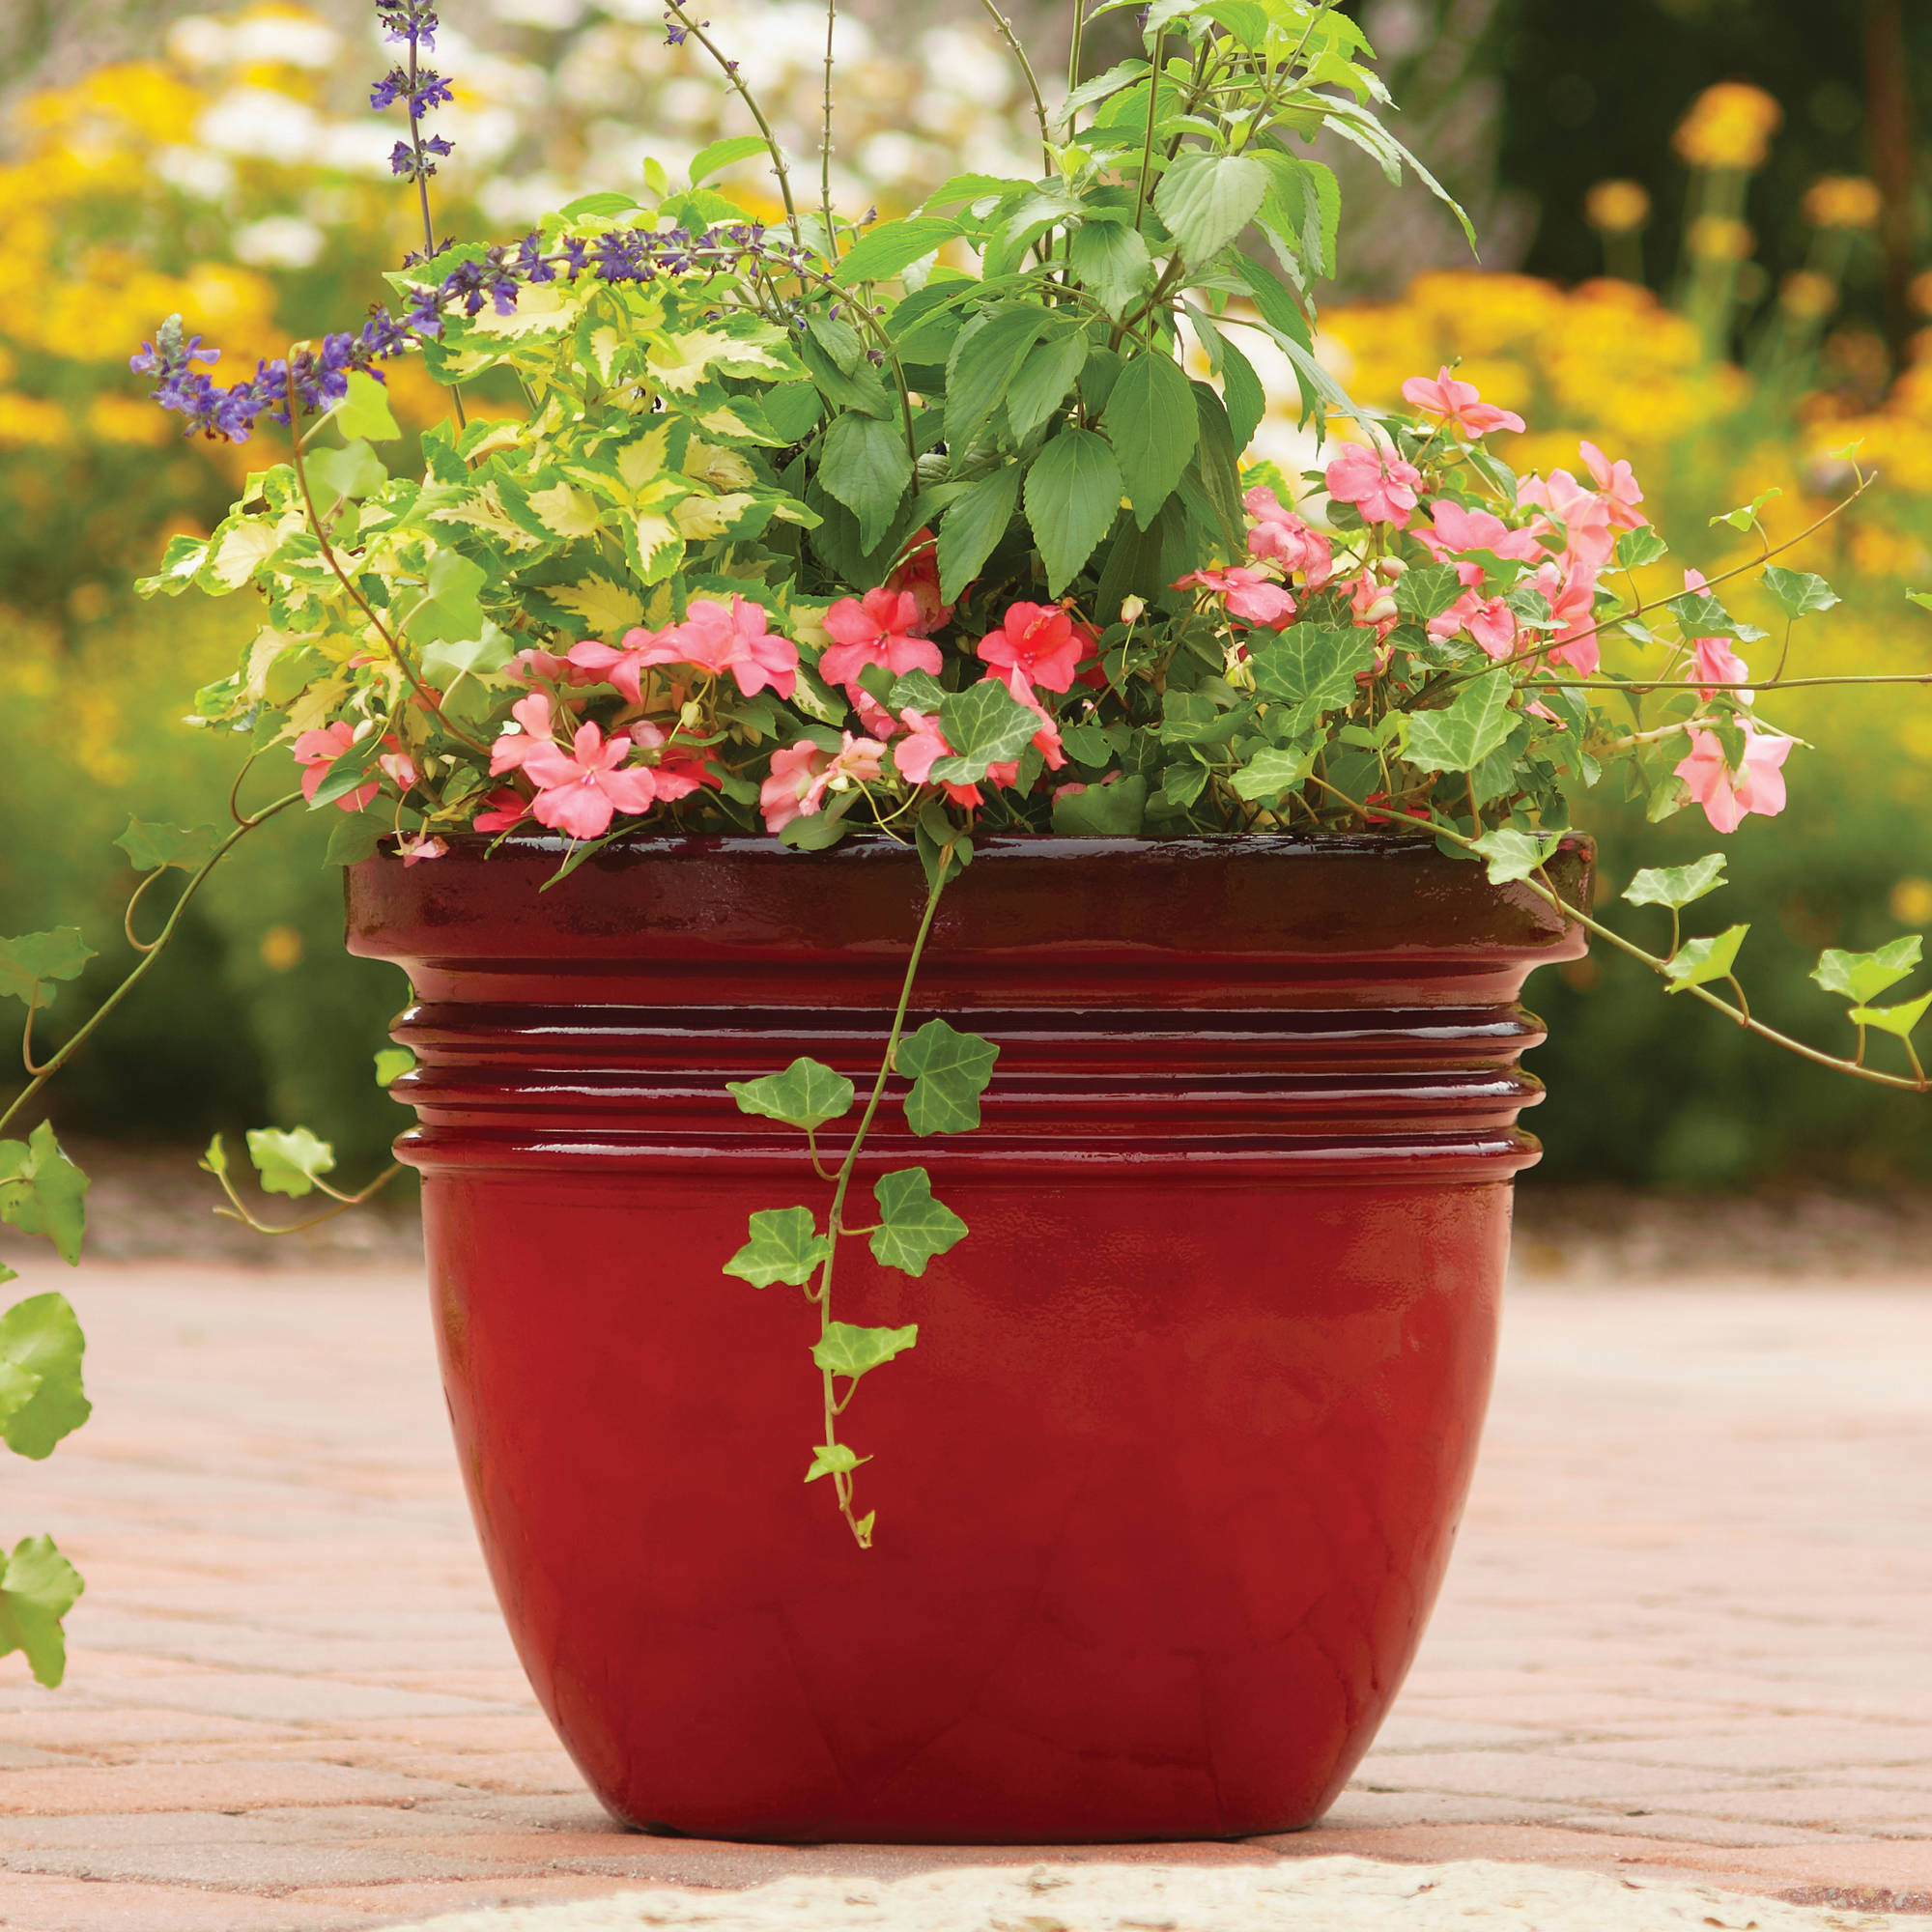 Better Homes and Gardens Bombay Decorative Outdoor Planter, Red Sedona - 16